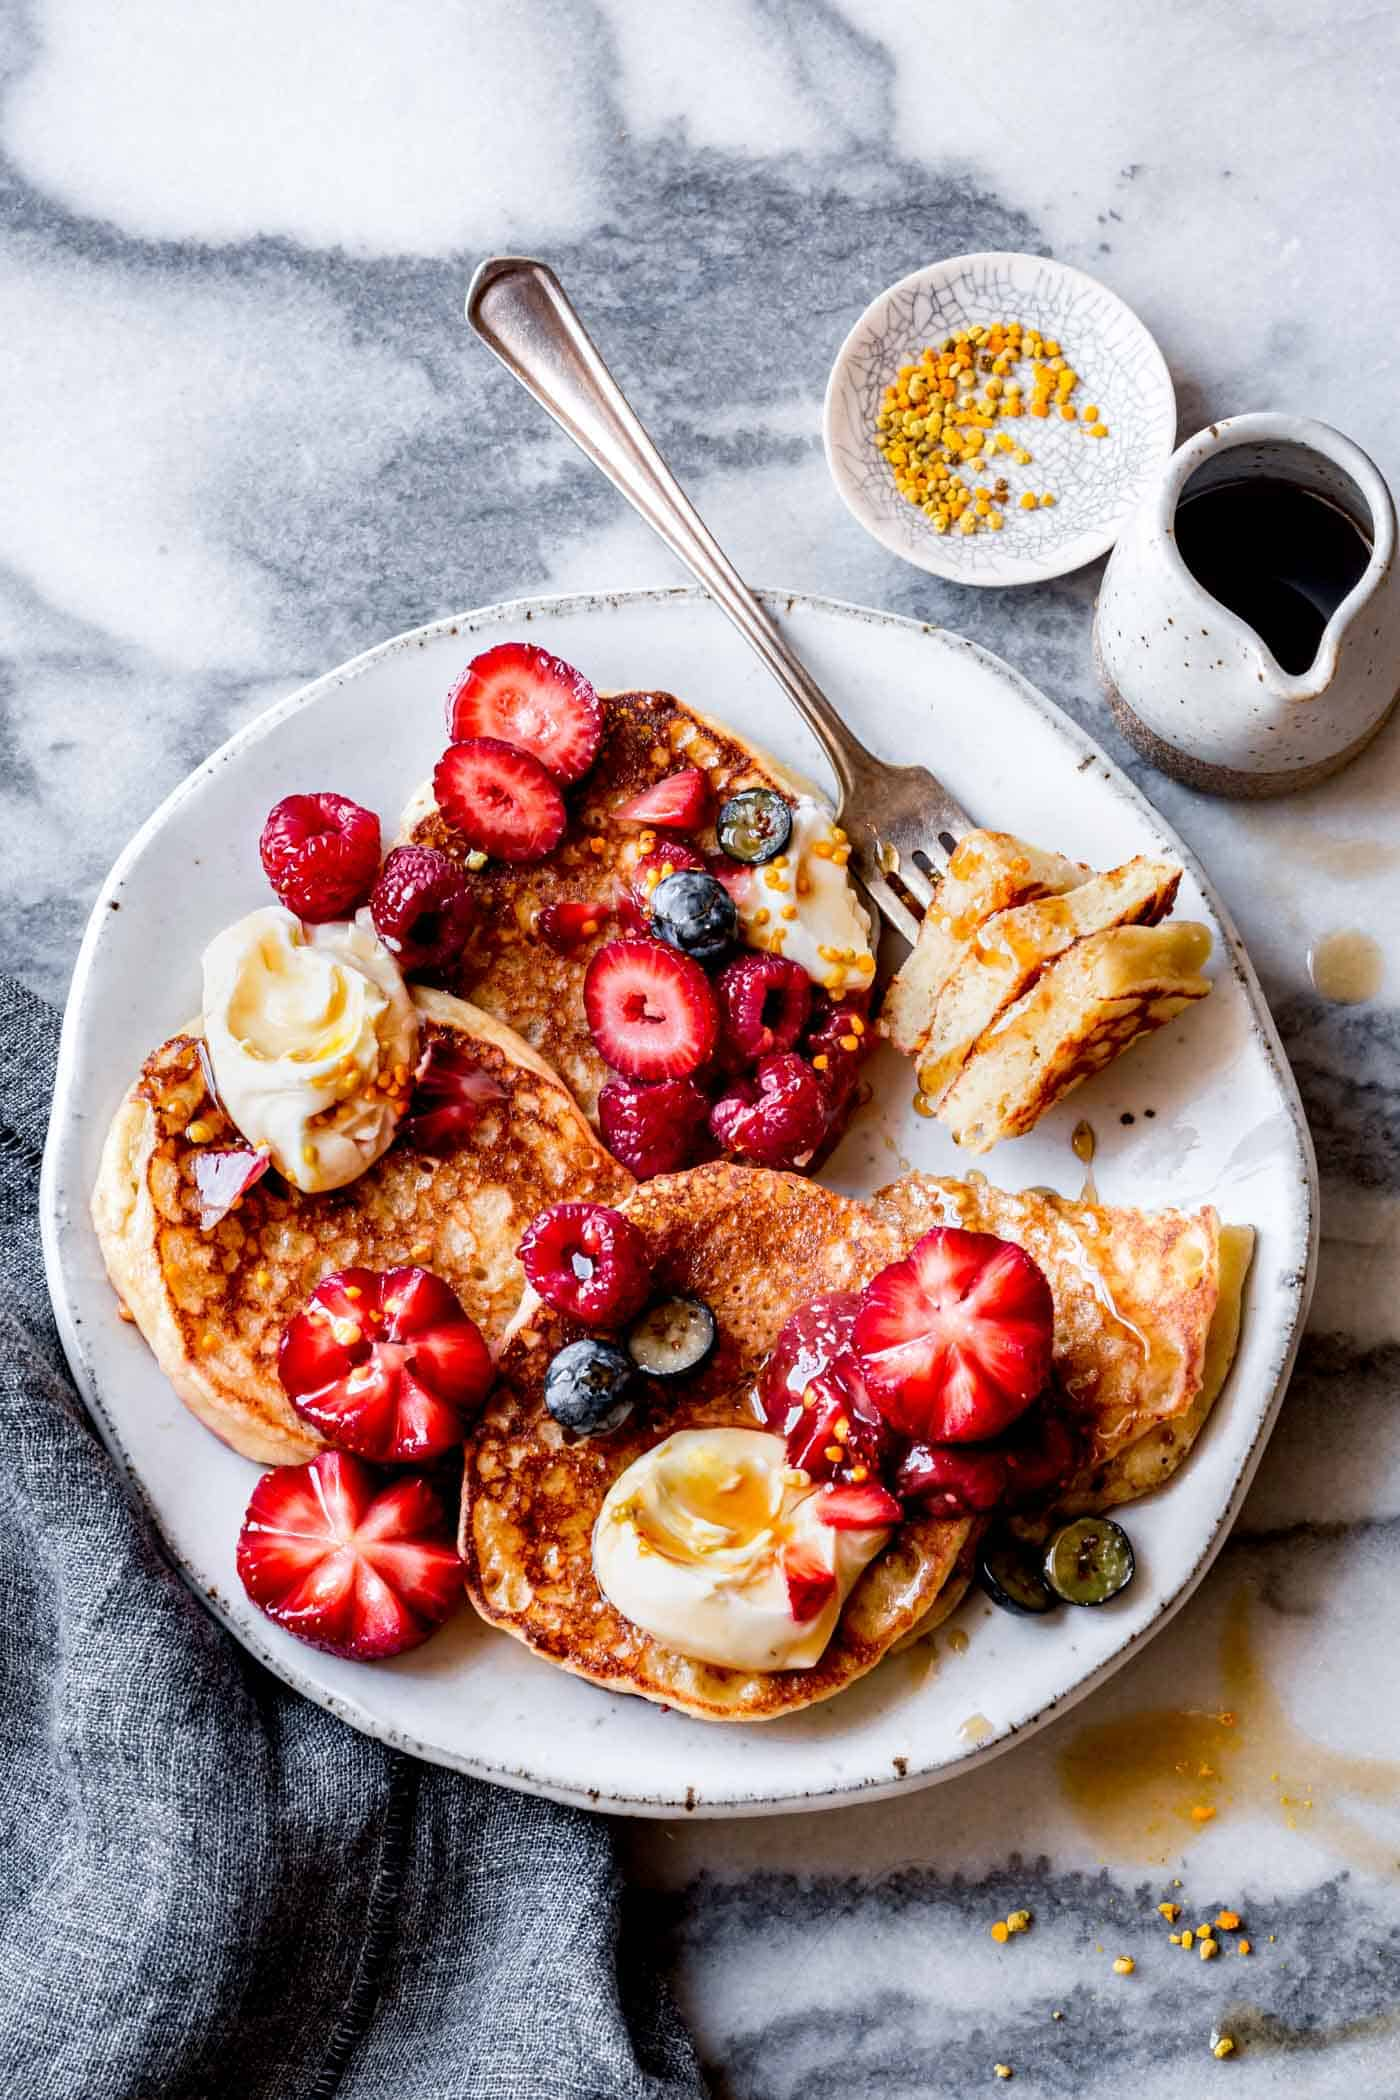 gluten-free lemon ricotta pancakes with fresh berries and yogurt